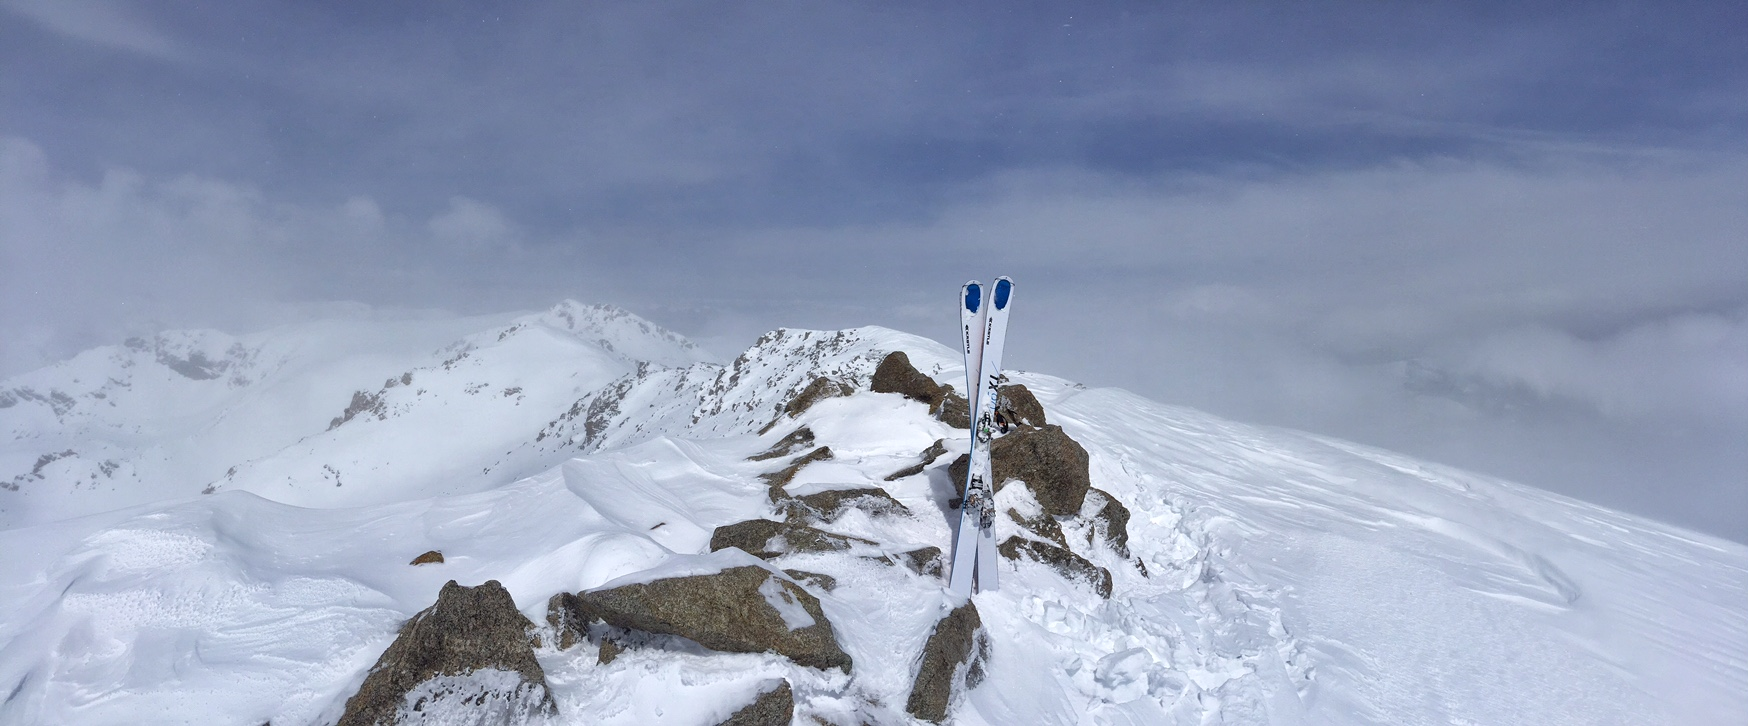 Summit of Massive 14,420', My 6th official ski of this peak in my career.